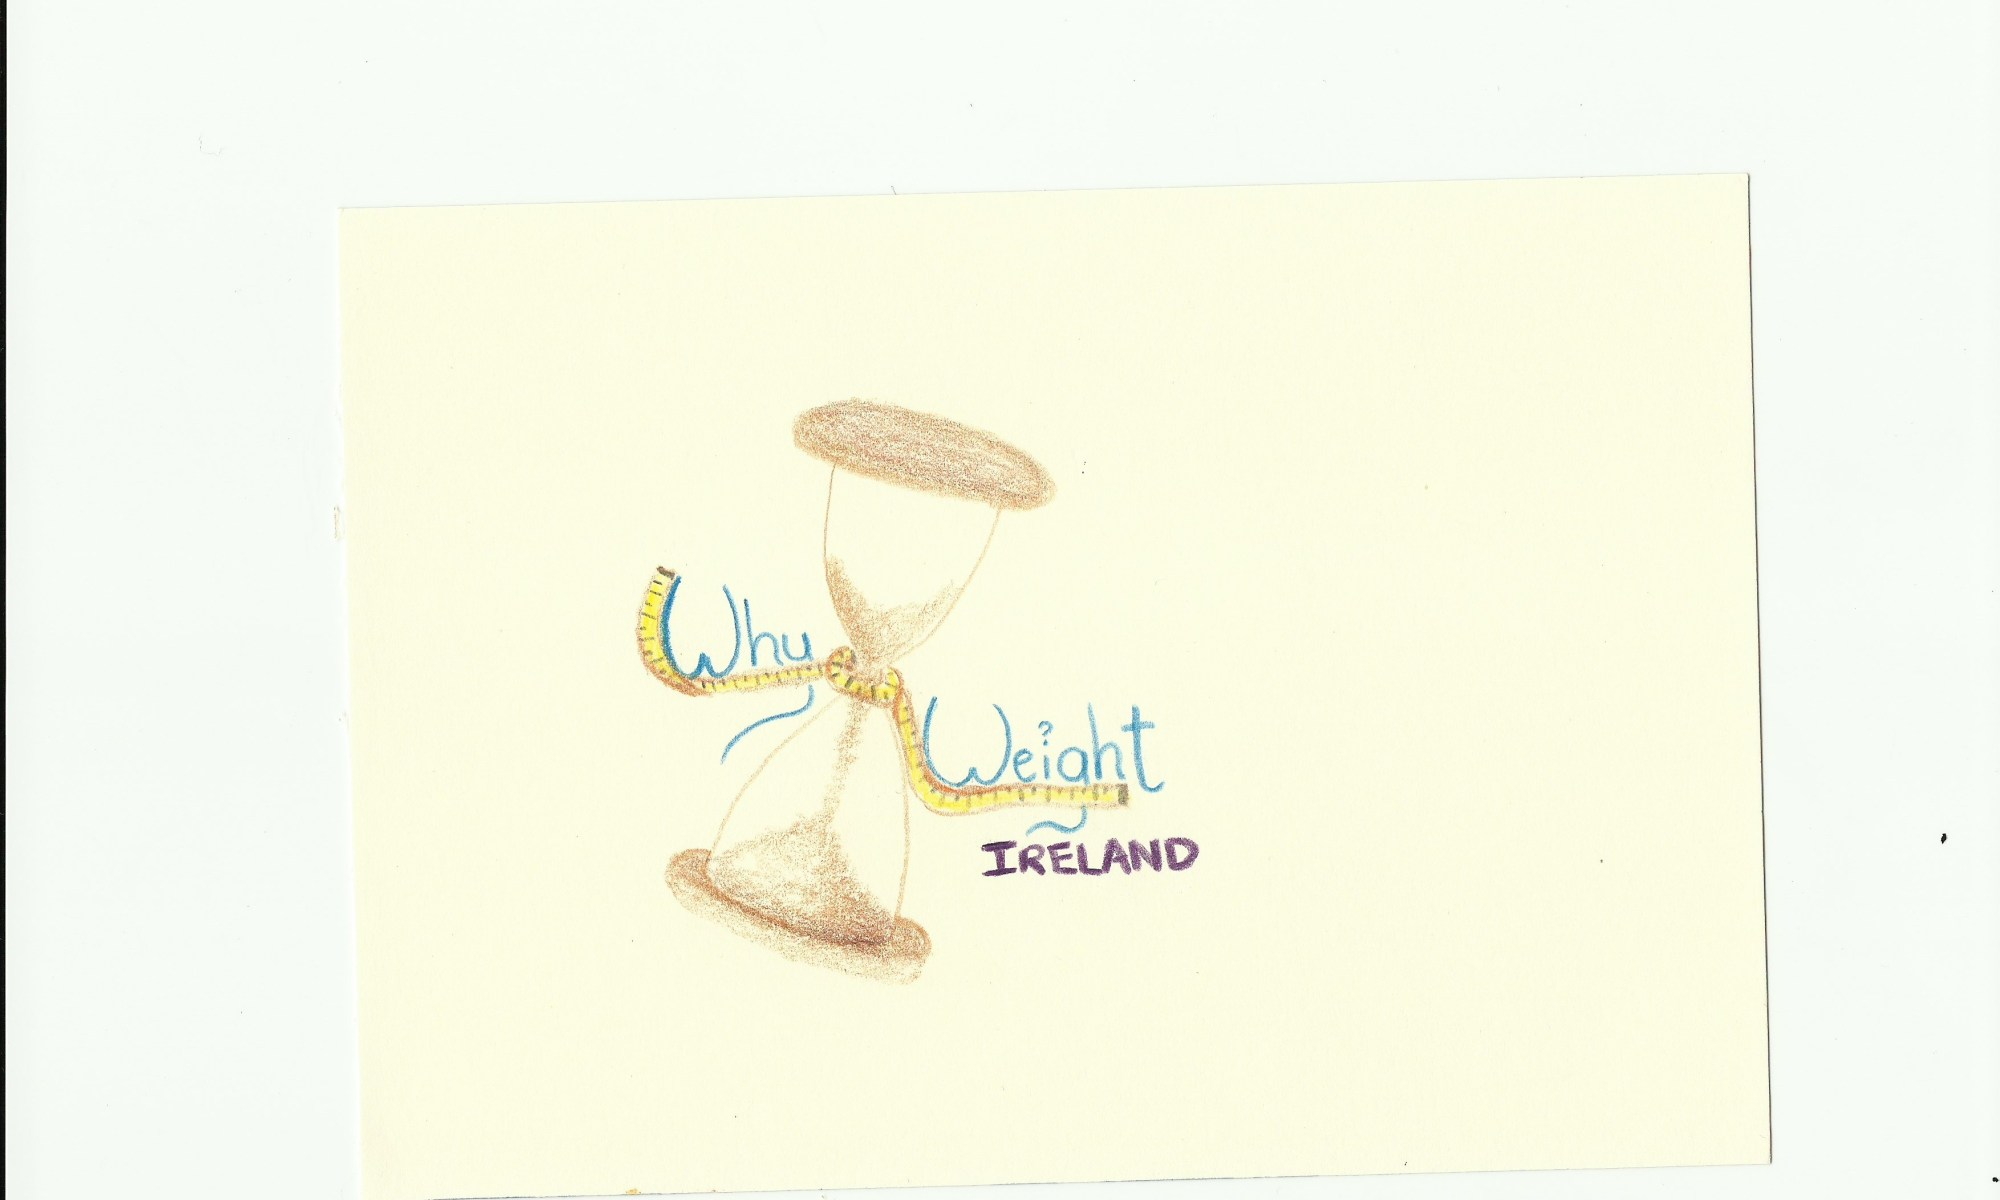 Why Weight Ireland 1st Ever Logo Design